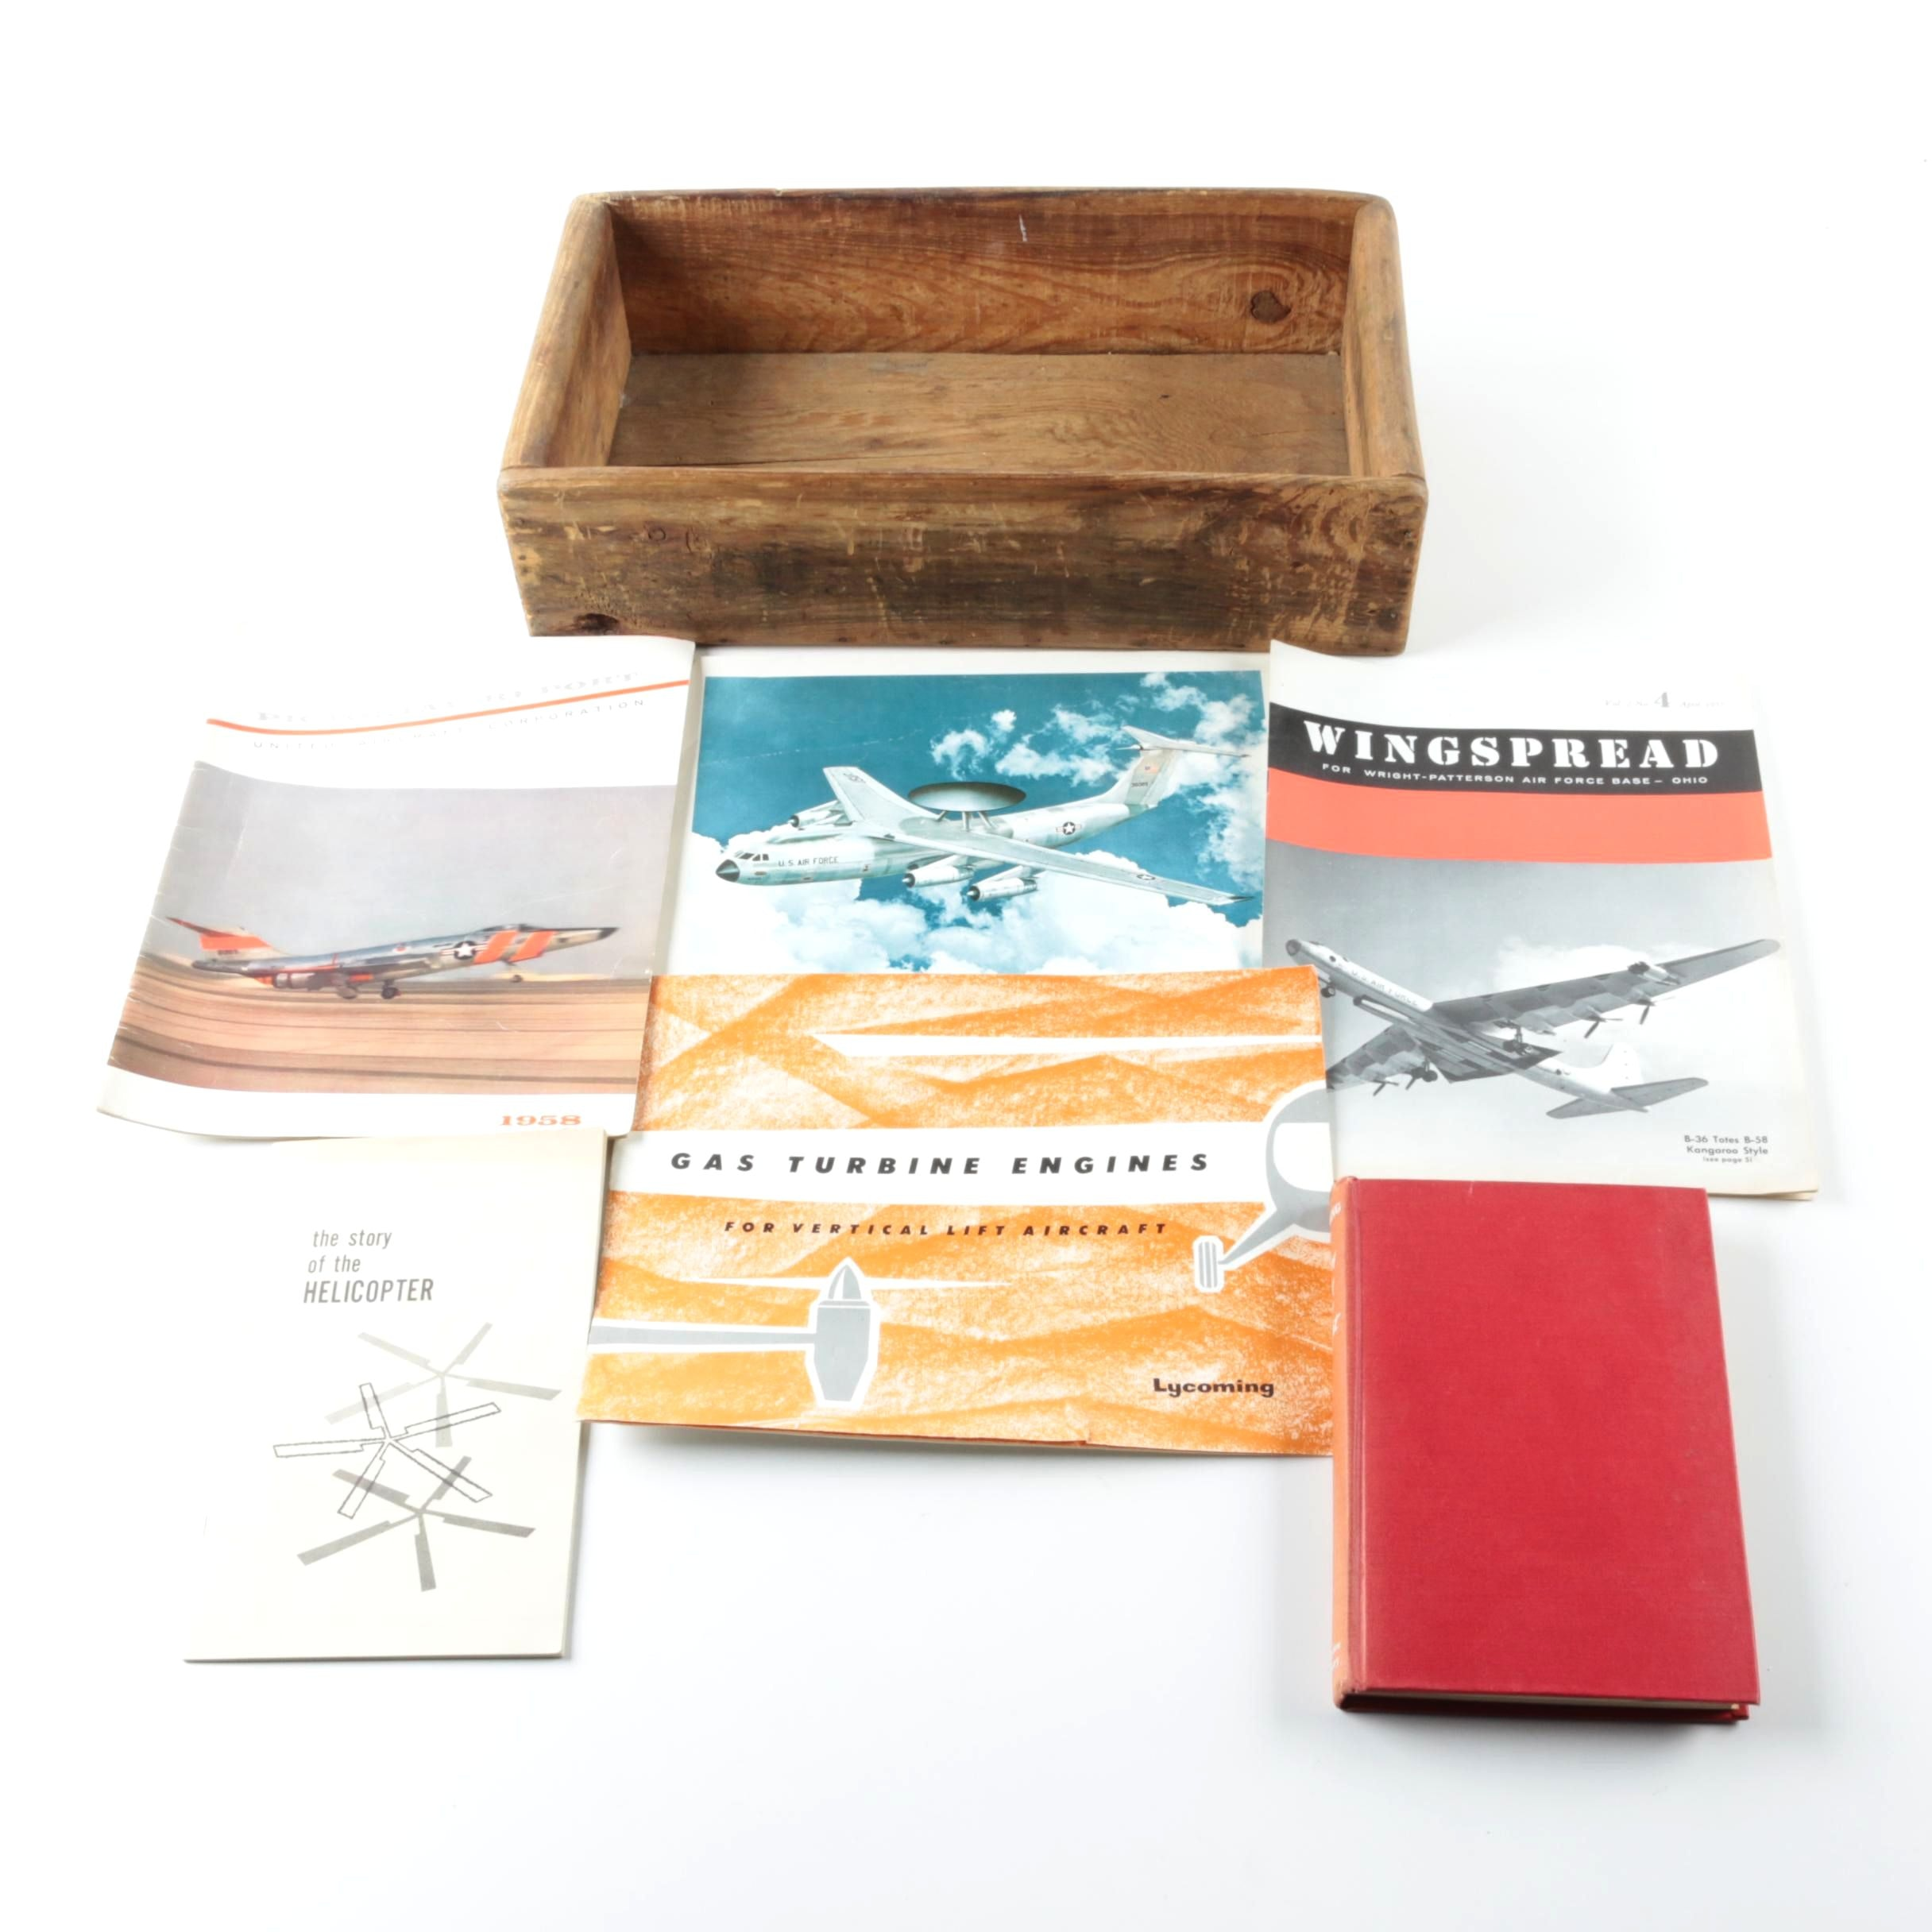 Wooden Box with Books on Aviation